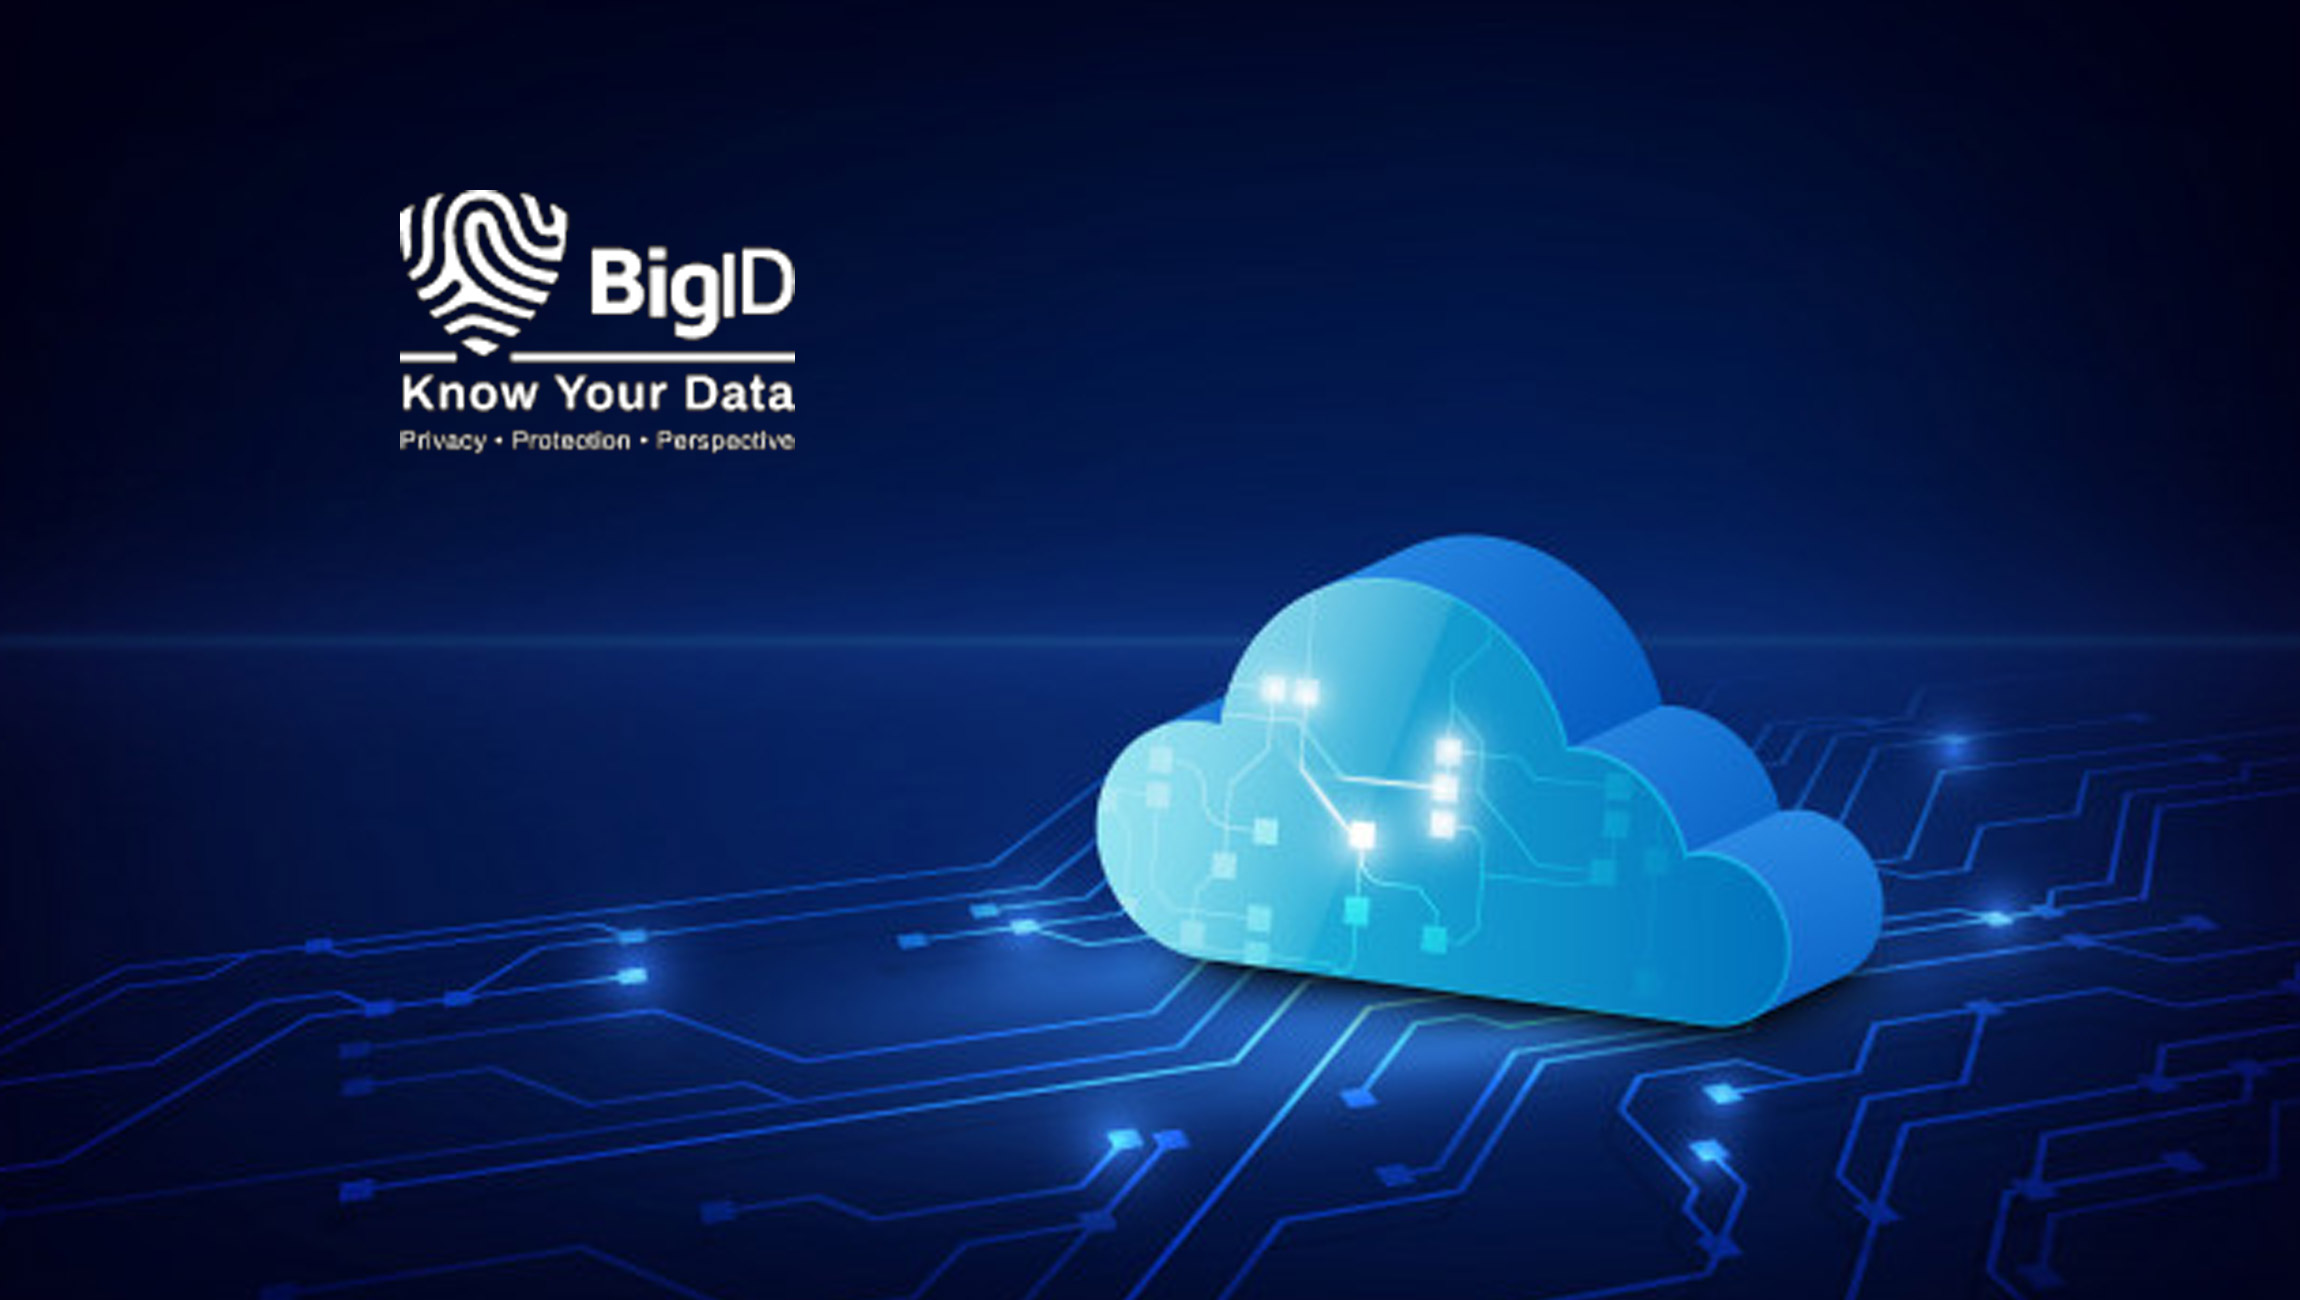 BigID Expands Access Intelligence for Cloud and Data Centers